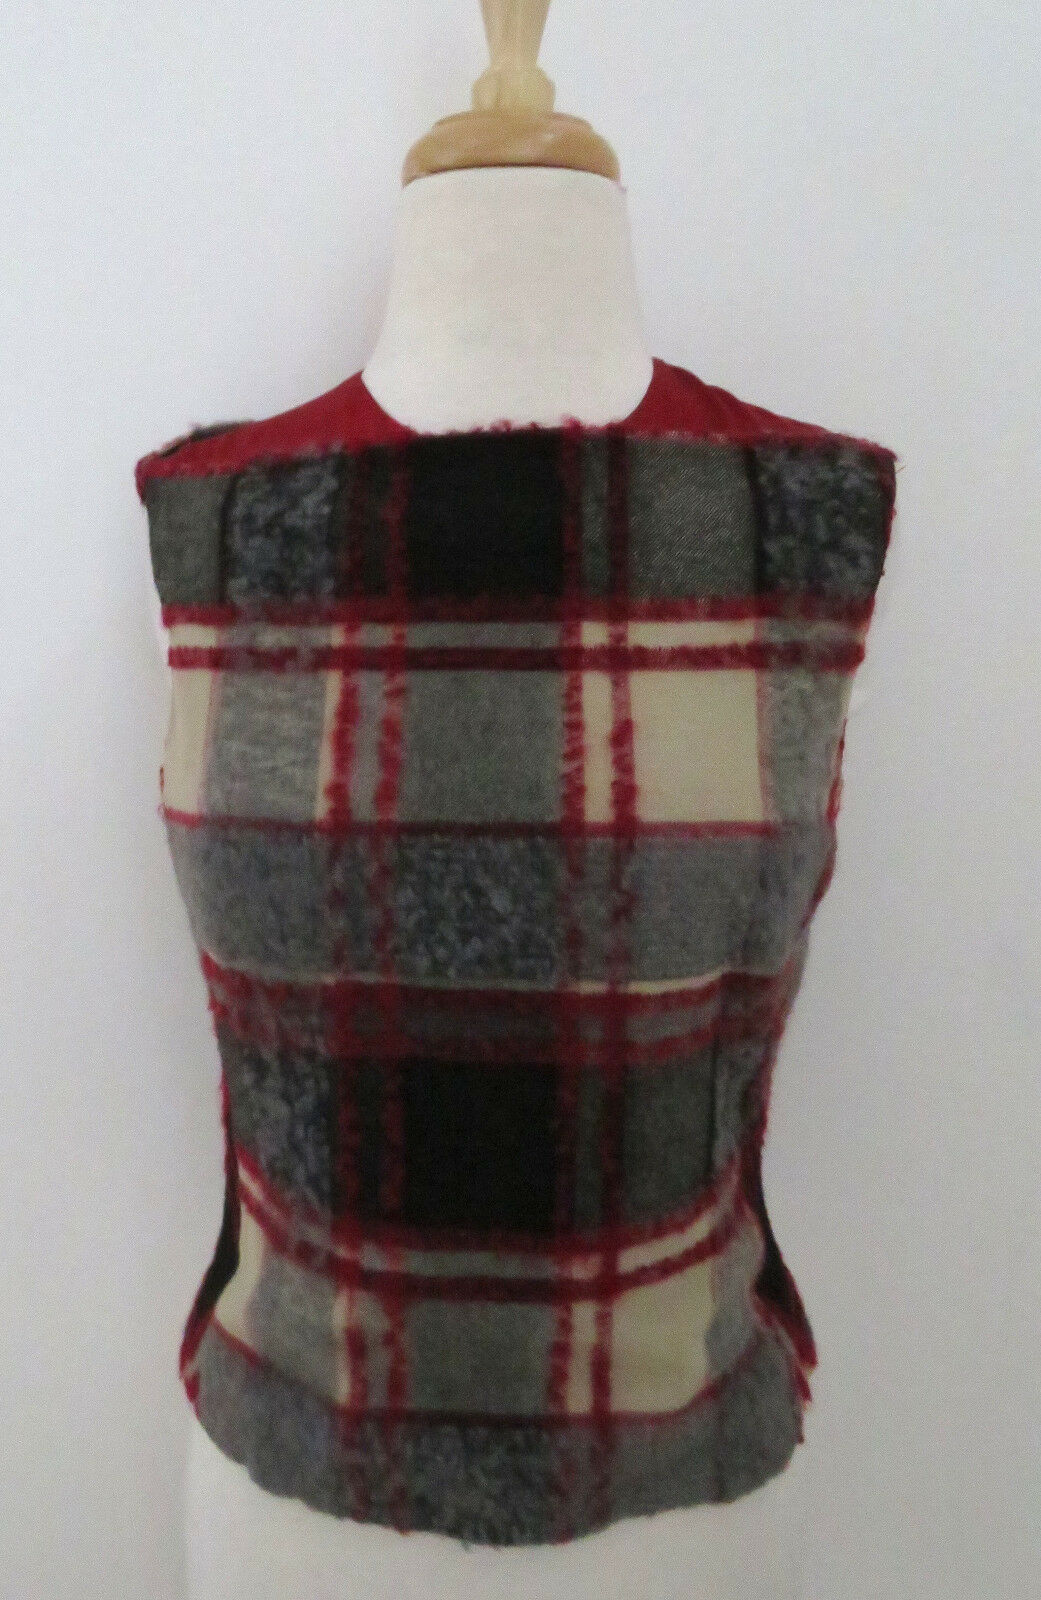 ETRO wool plaid Sleeveless top 38 4 Silk Charmeuse lined